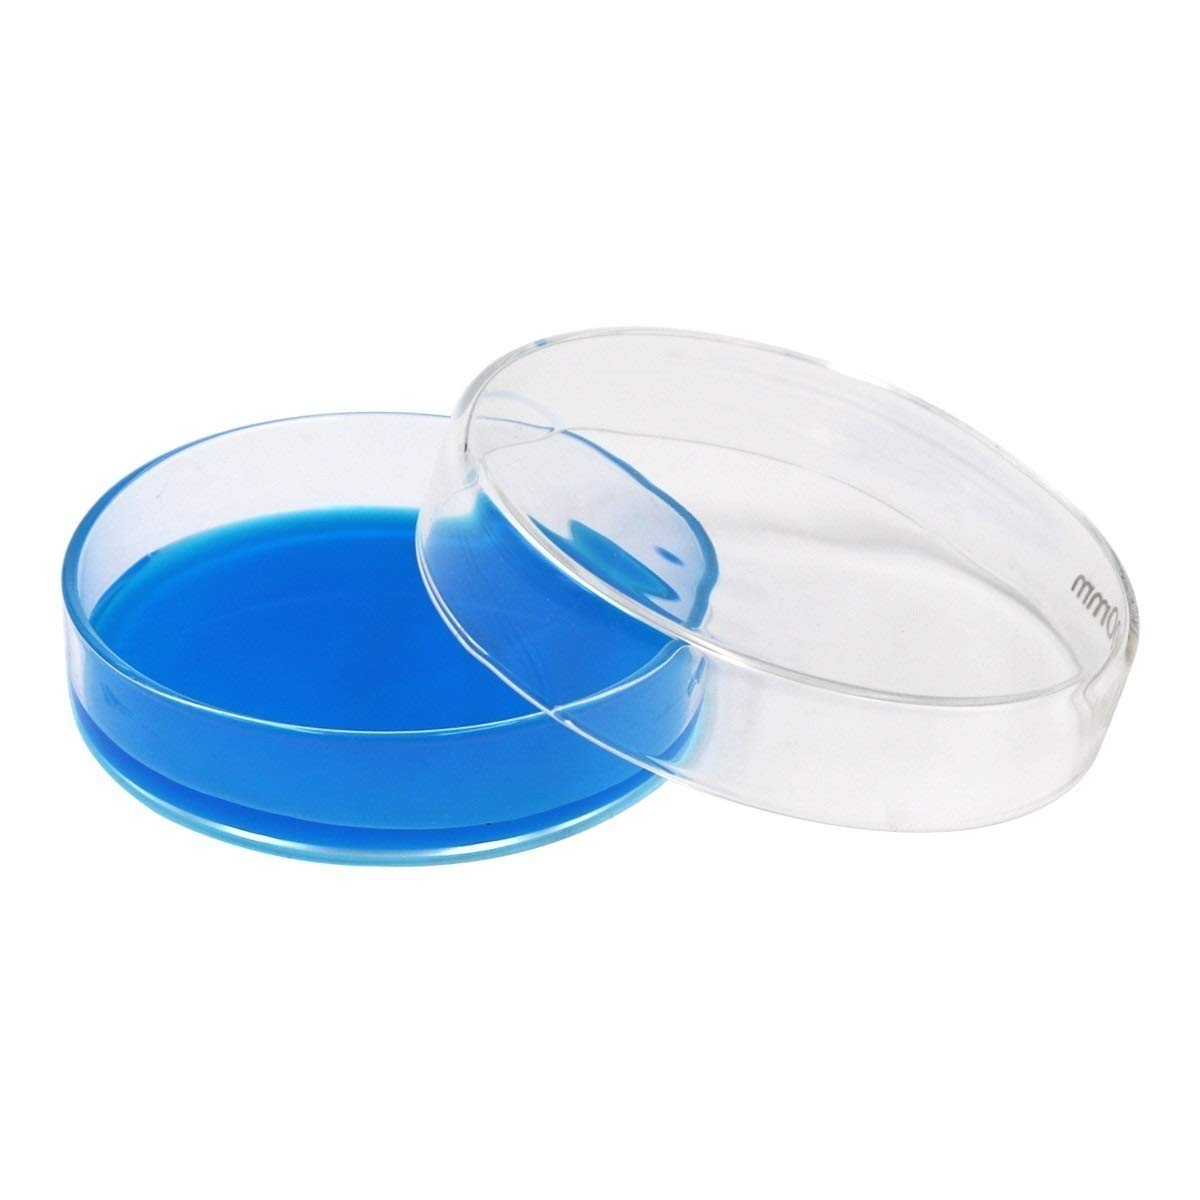 90mm, 10 Lab Glass Petri Dish with Lids Petri Dish Kit Tissue Culture Plate for Science Projects